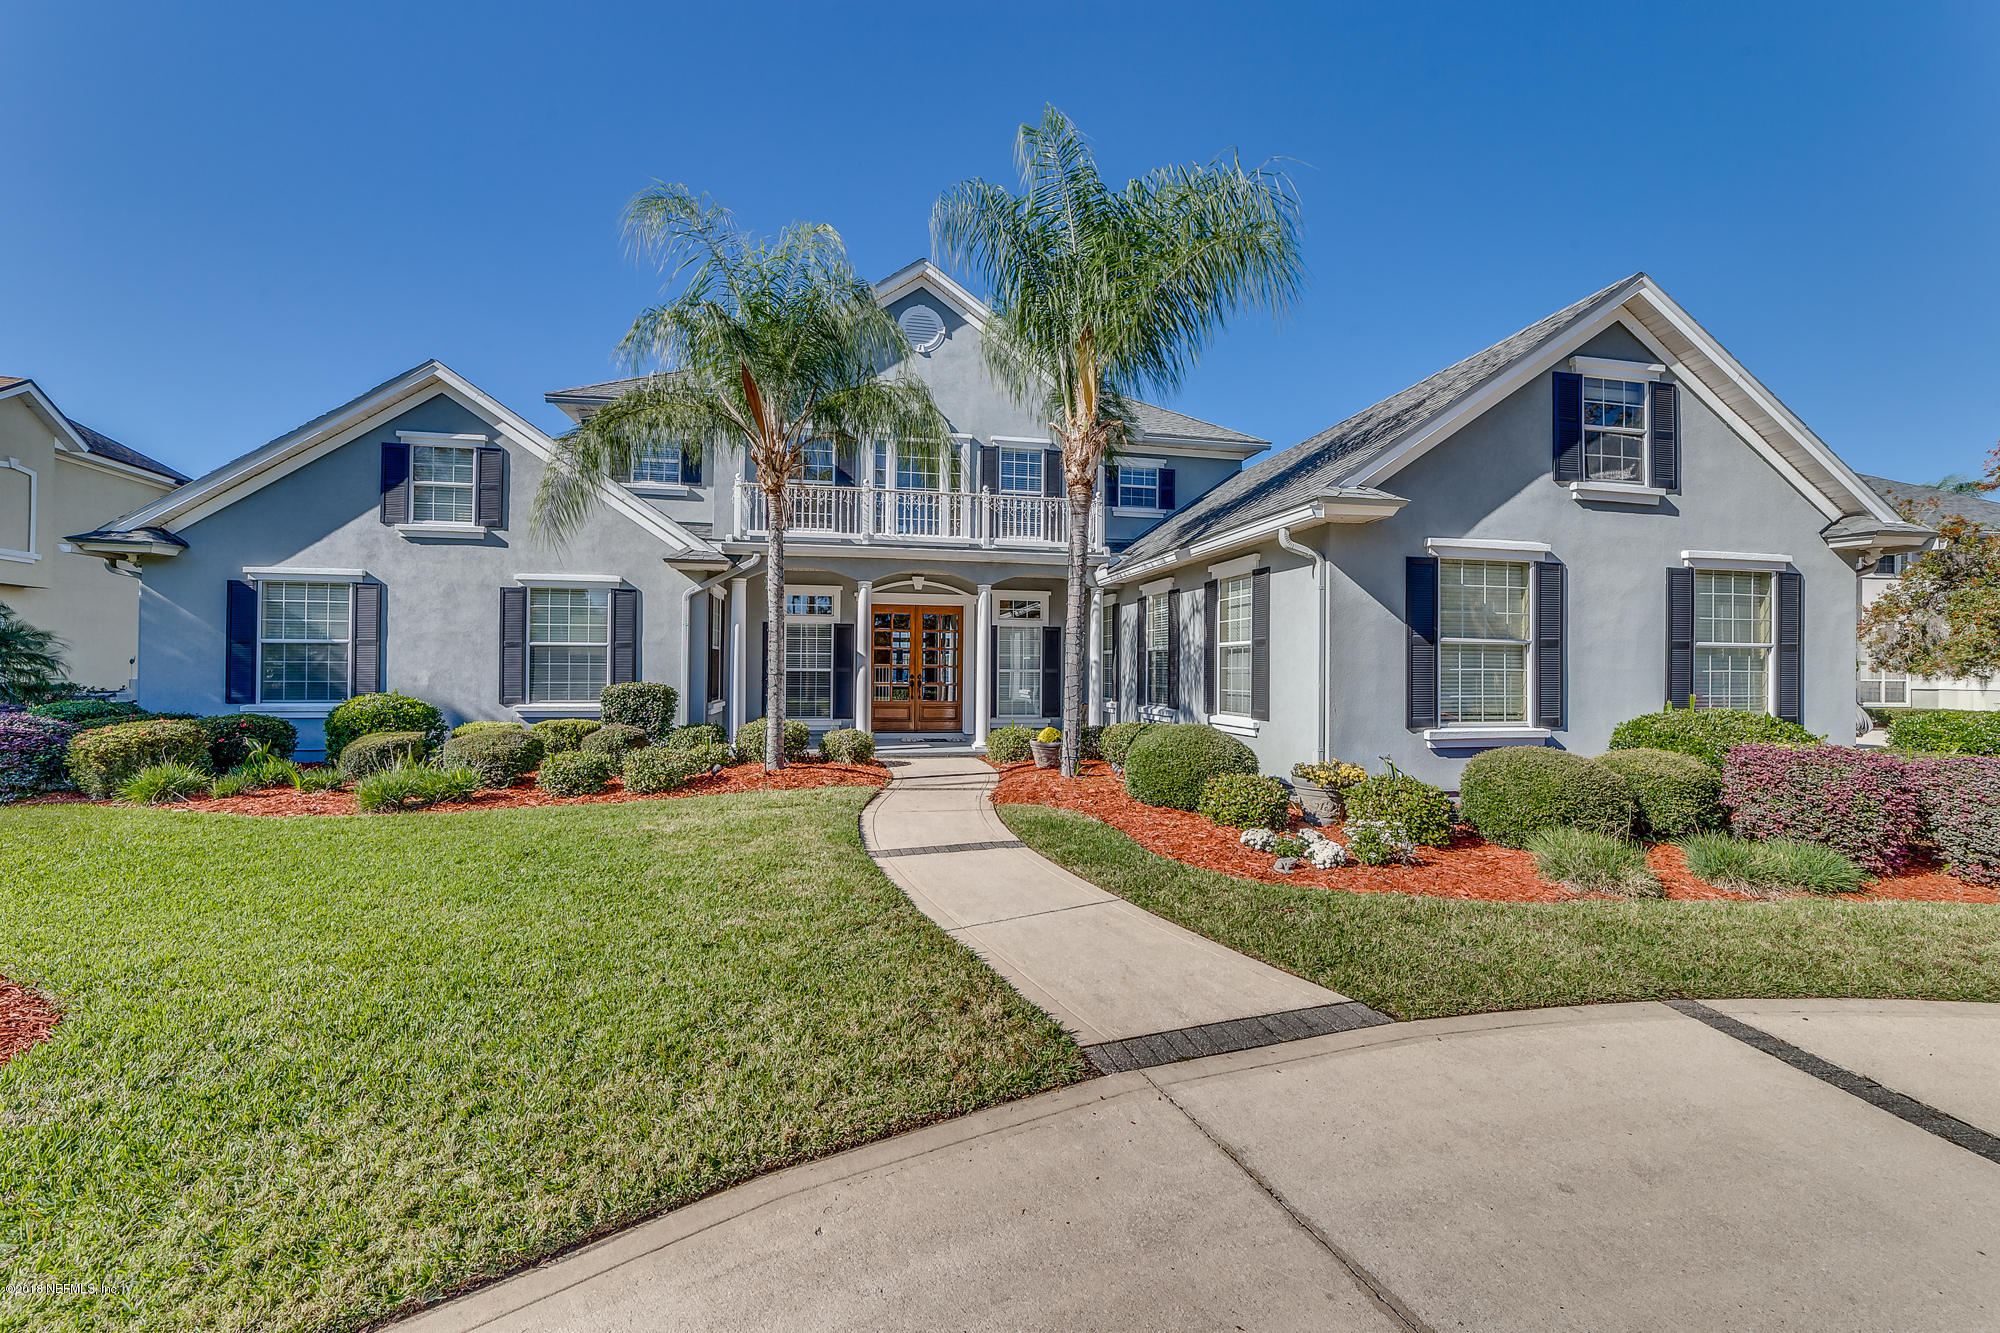 2299 N LAKESHORE DR, Fleming Island, Florida